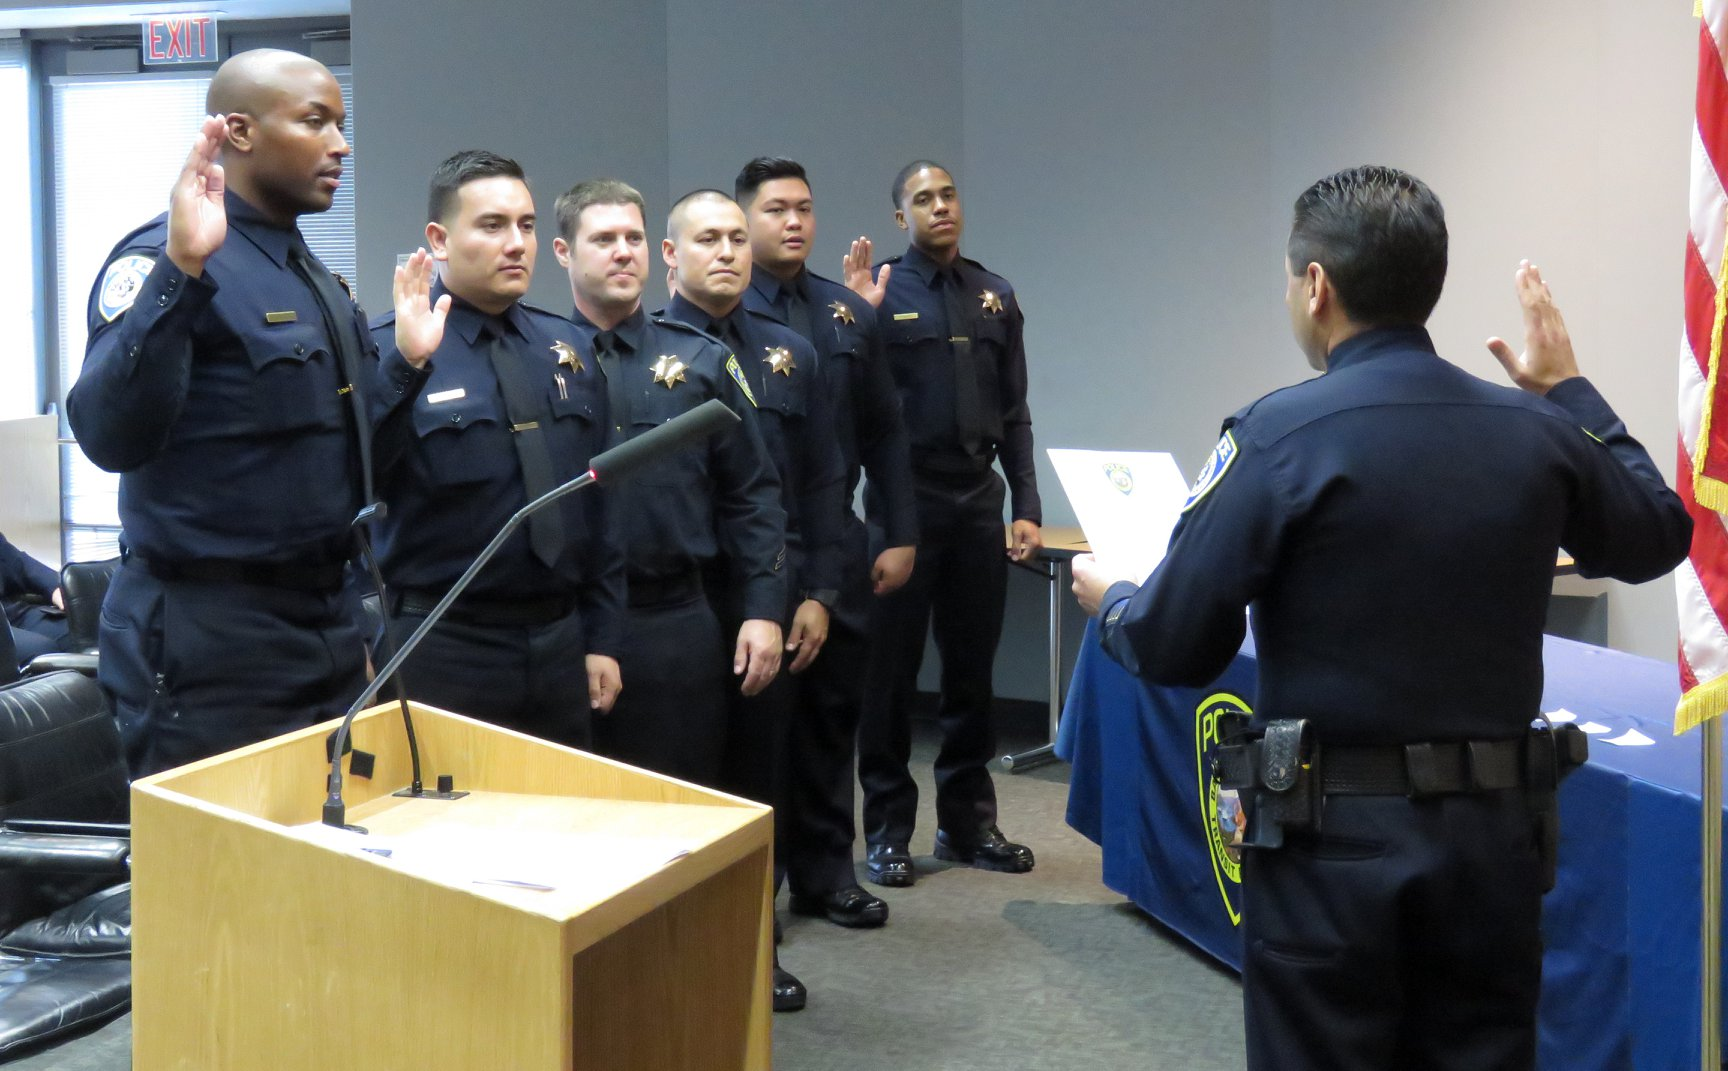 BPD laterals swearing in